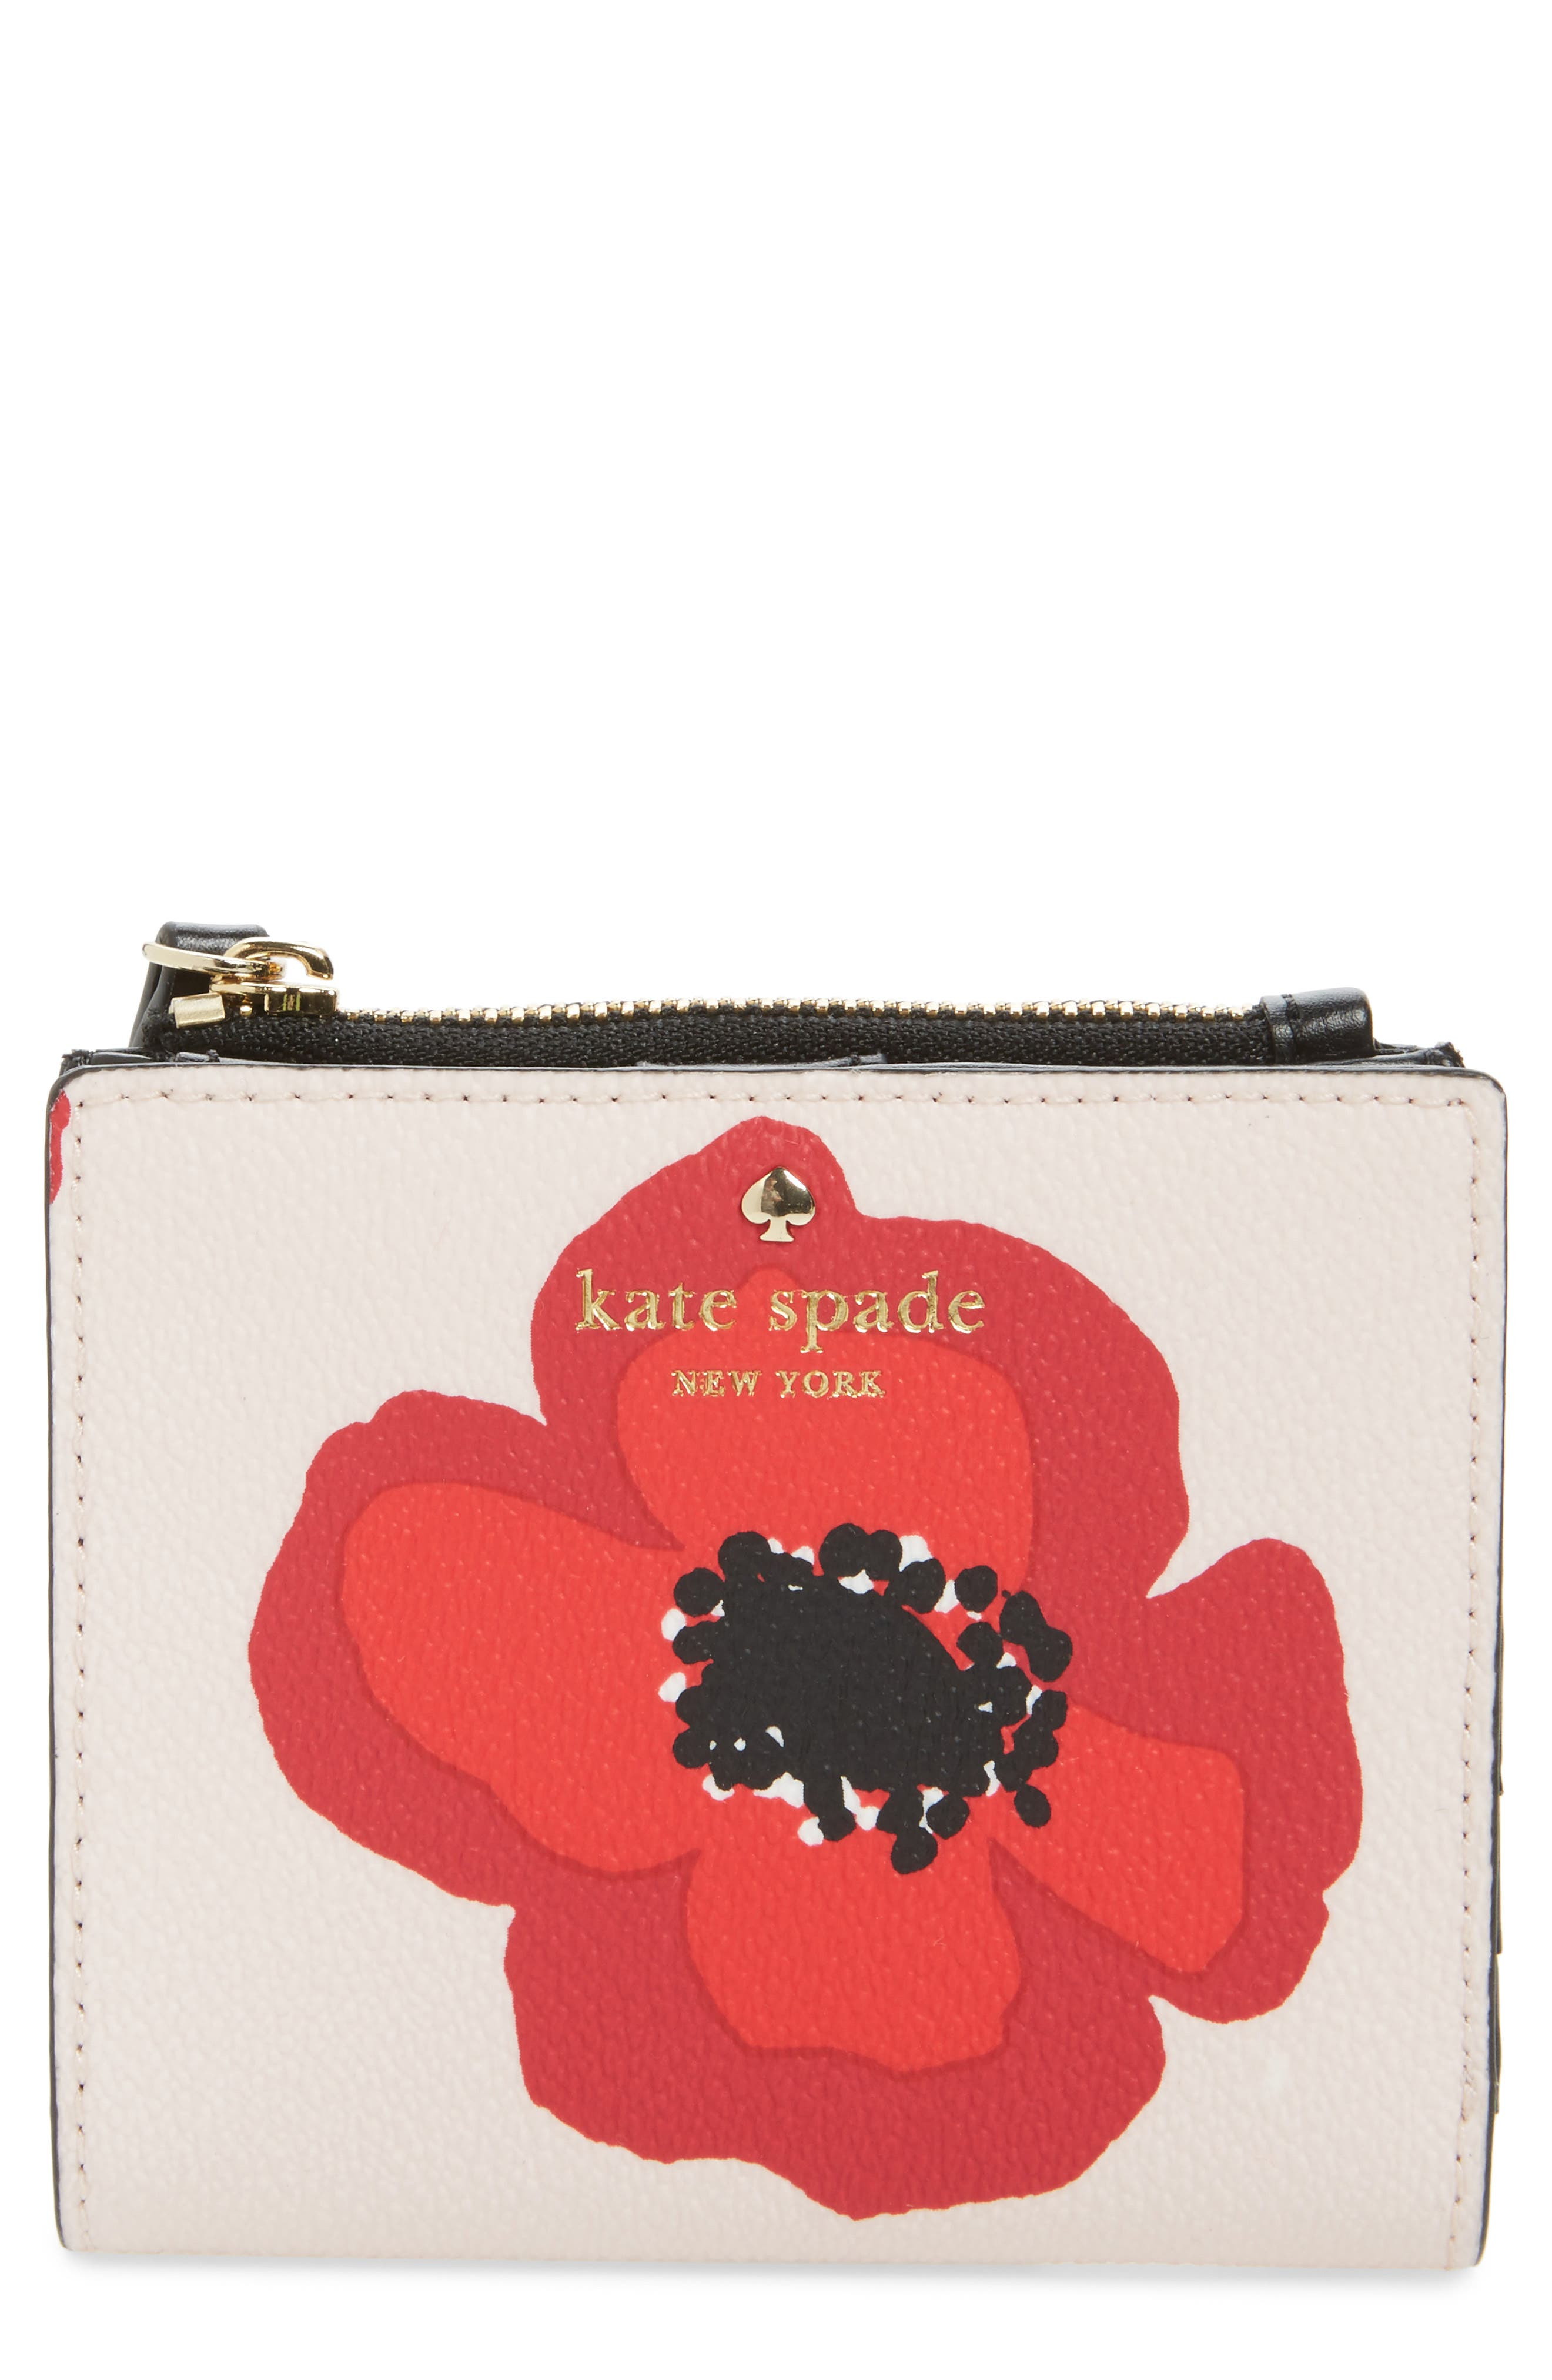 hyde lane poppy adalyn leather wallet,                             Main thumbnail 1, color,                             Rose Dew Multi